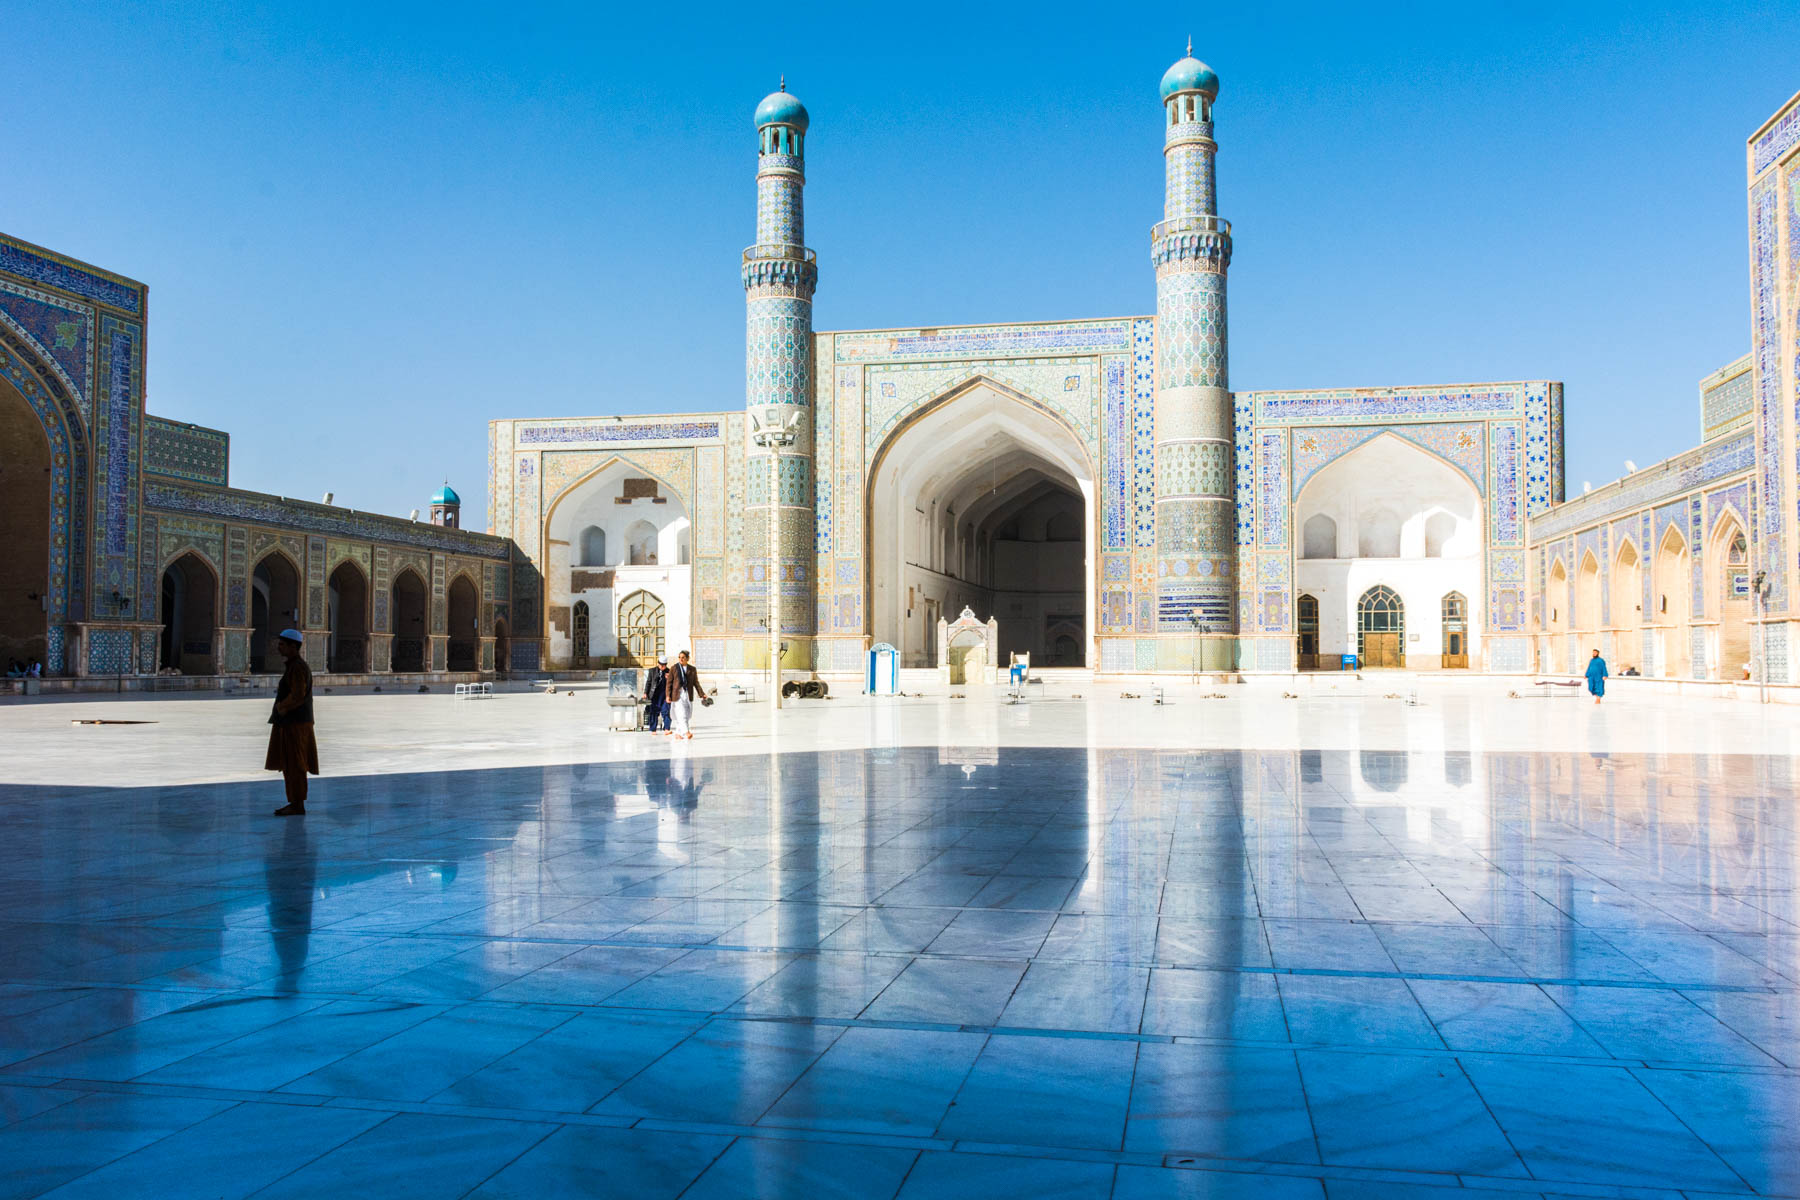 The Jame Masjid, Friday Mosque, in Herat, Afghanistan - Lost With Purpose